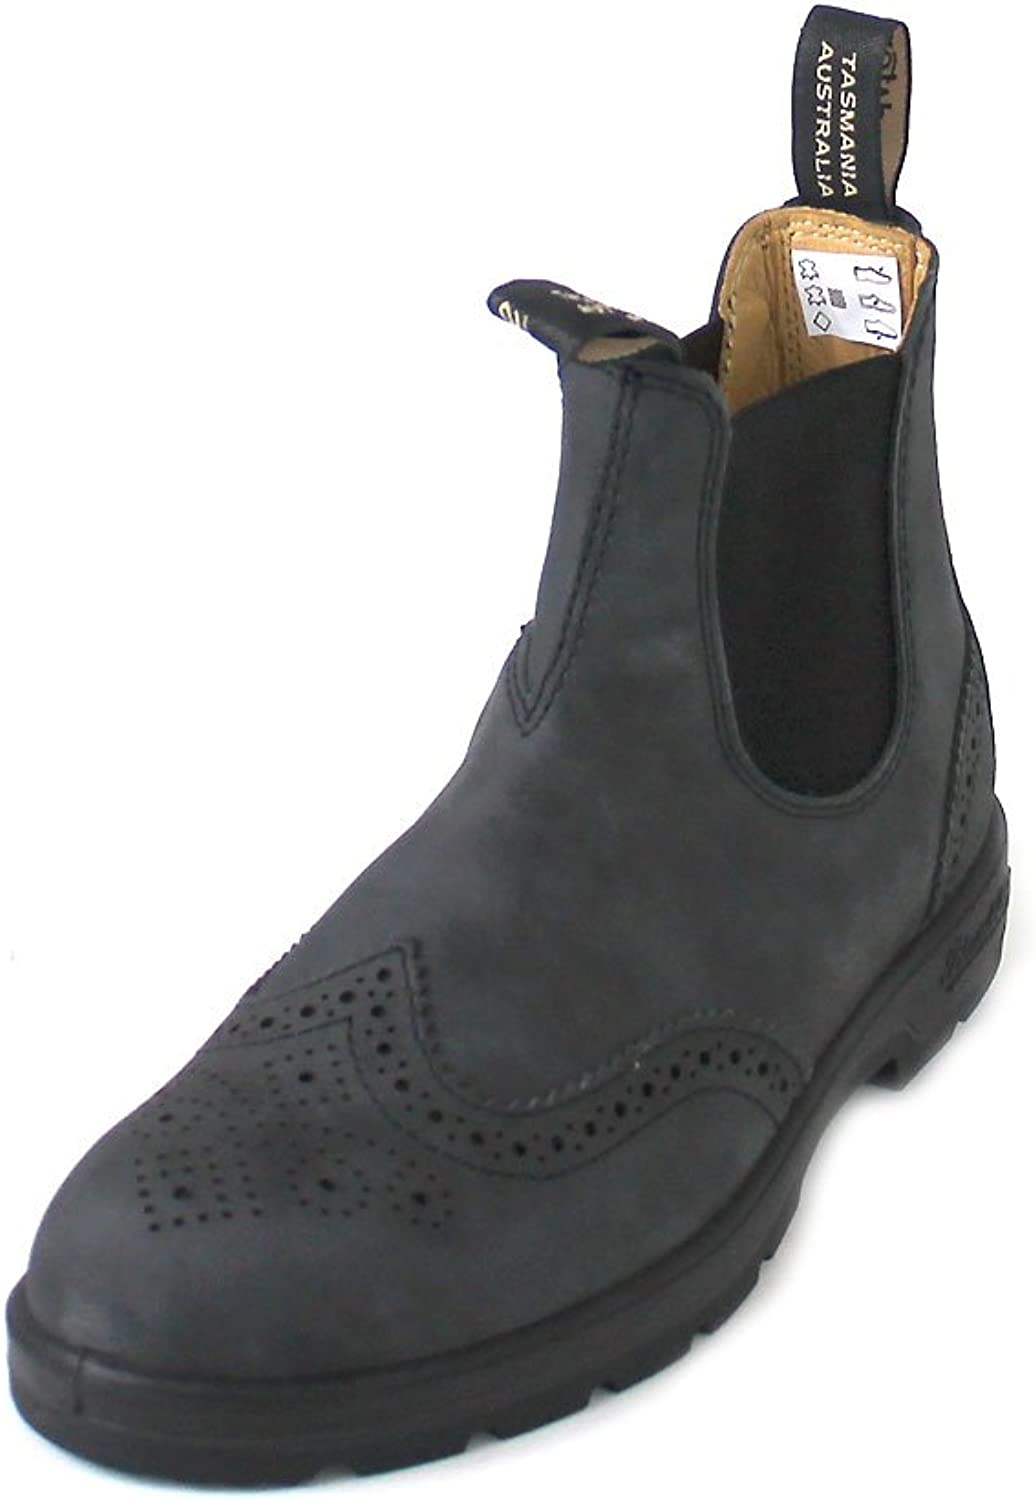 bluendstone Unisex Leather Lined Pull-On Boot Rustic Blk 4.5 M UK